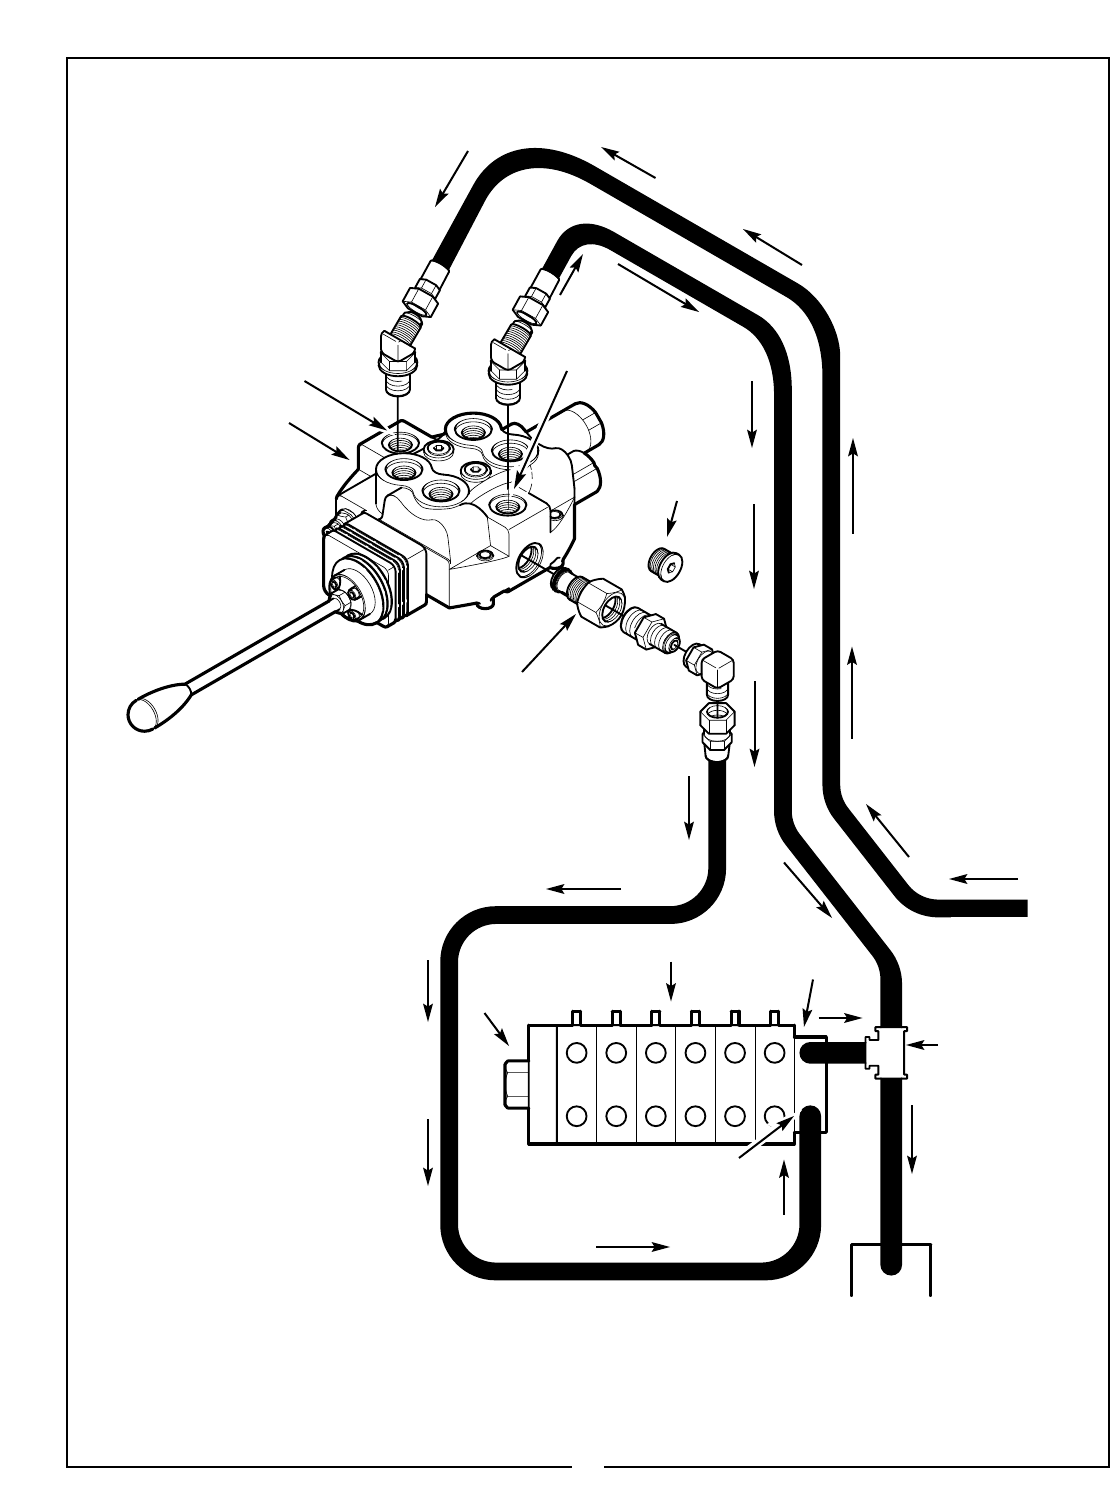 hight resolution of diagram of a bush